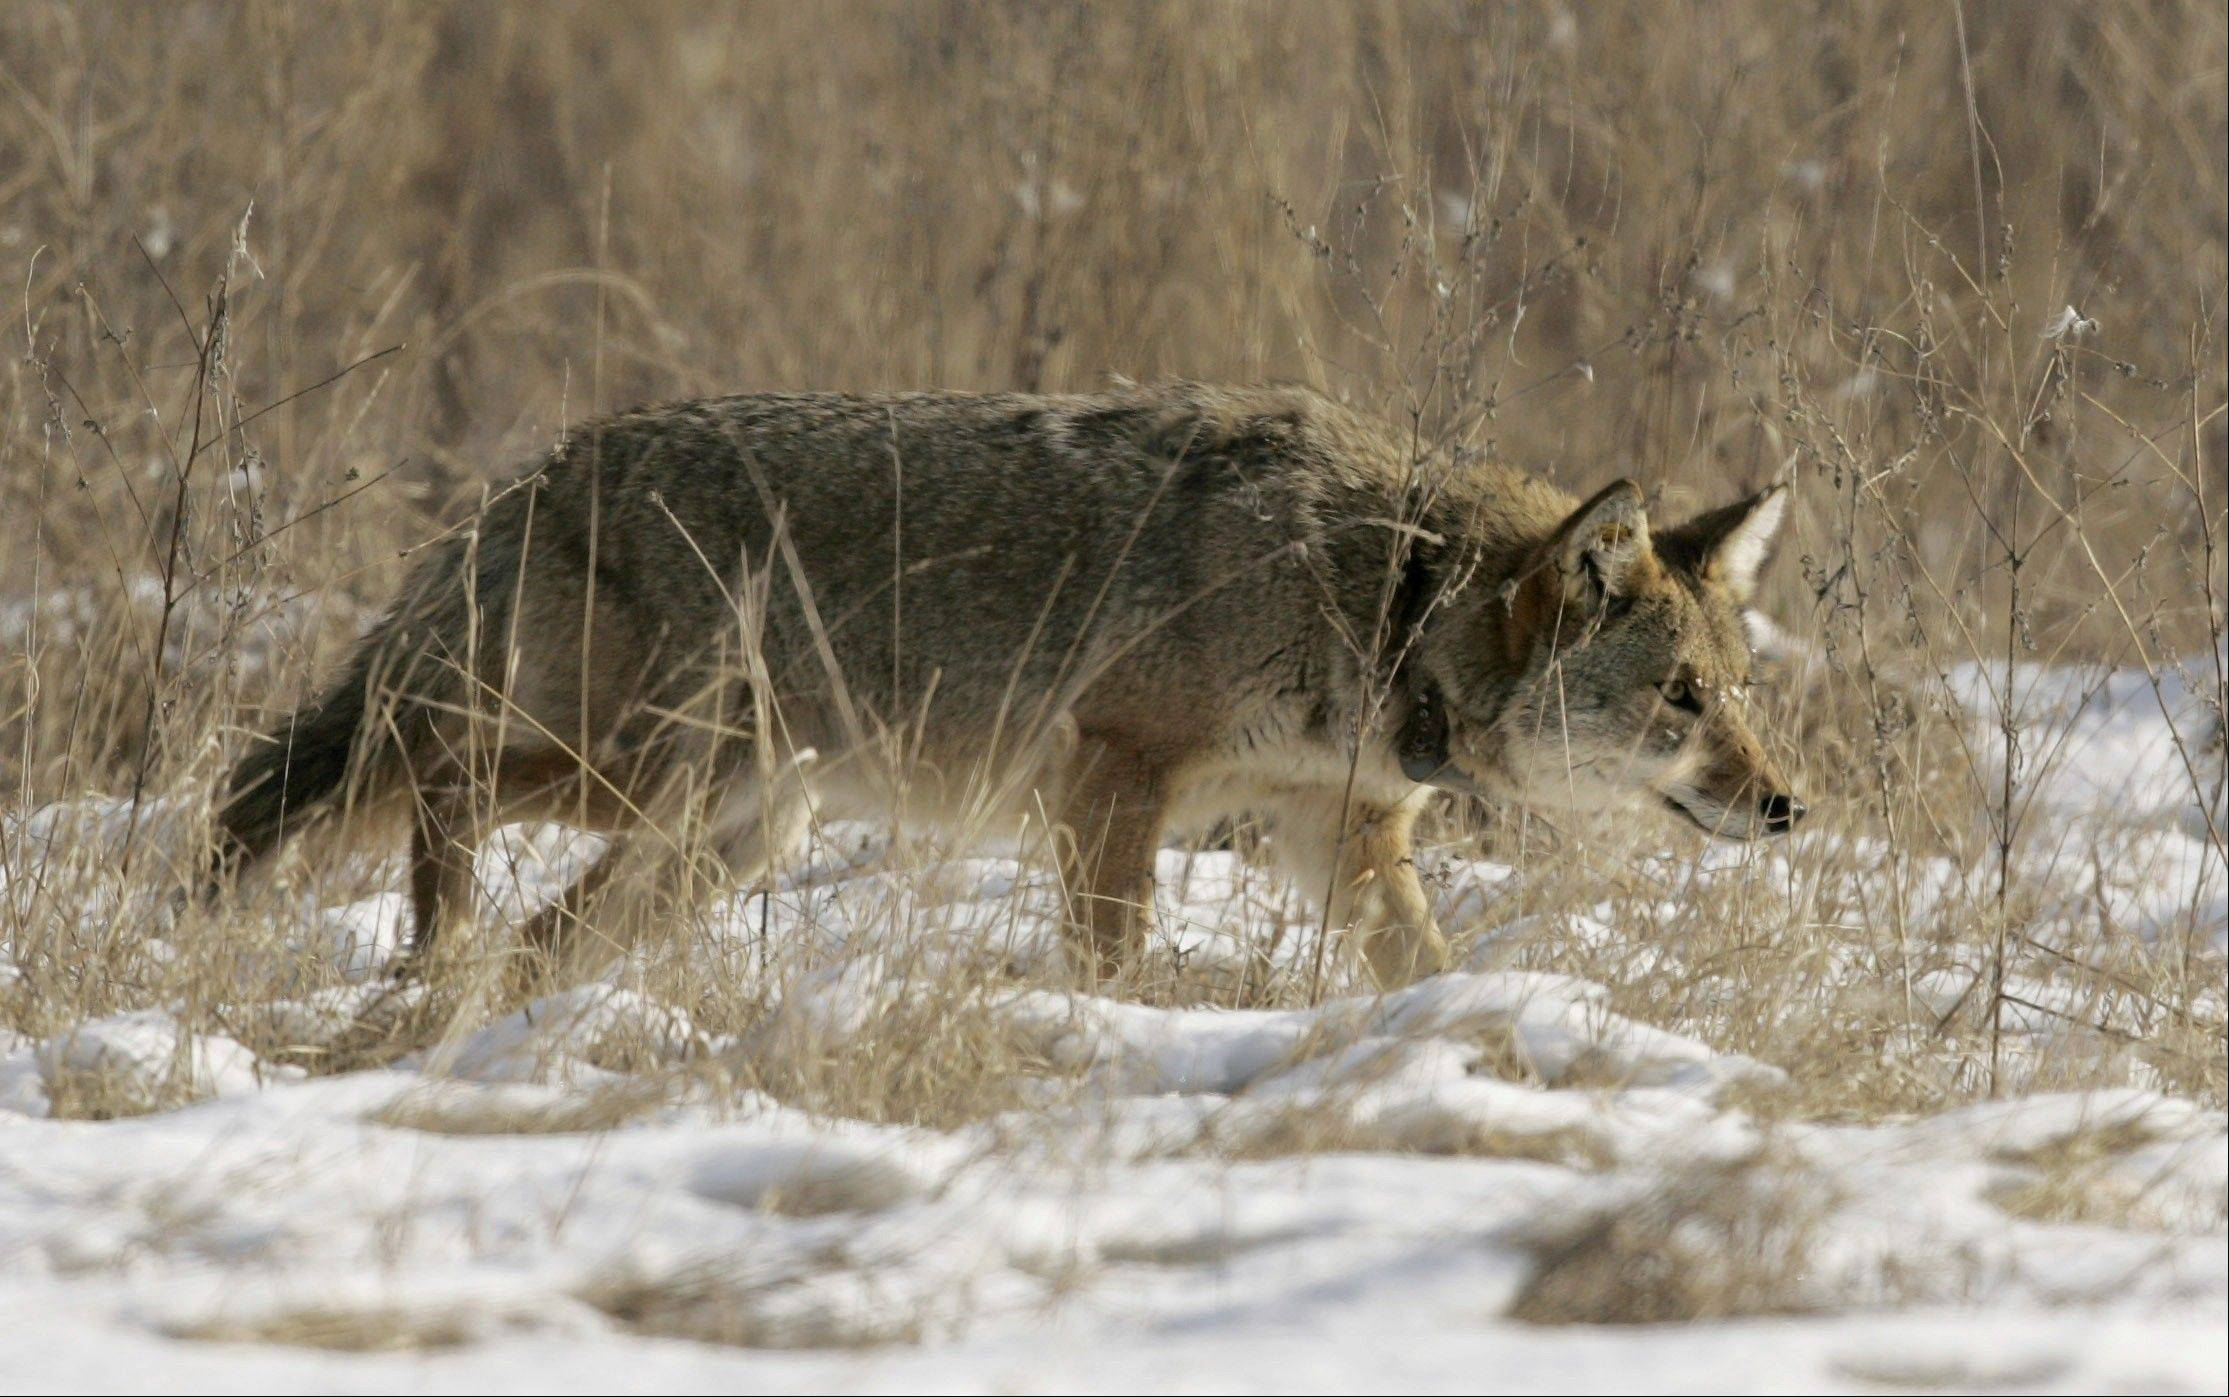 Warning: Suburban coyotes view your pets as intruders